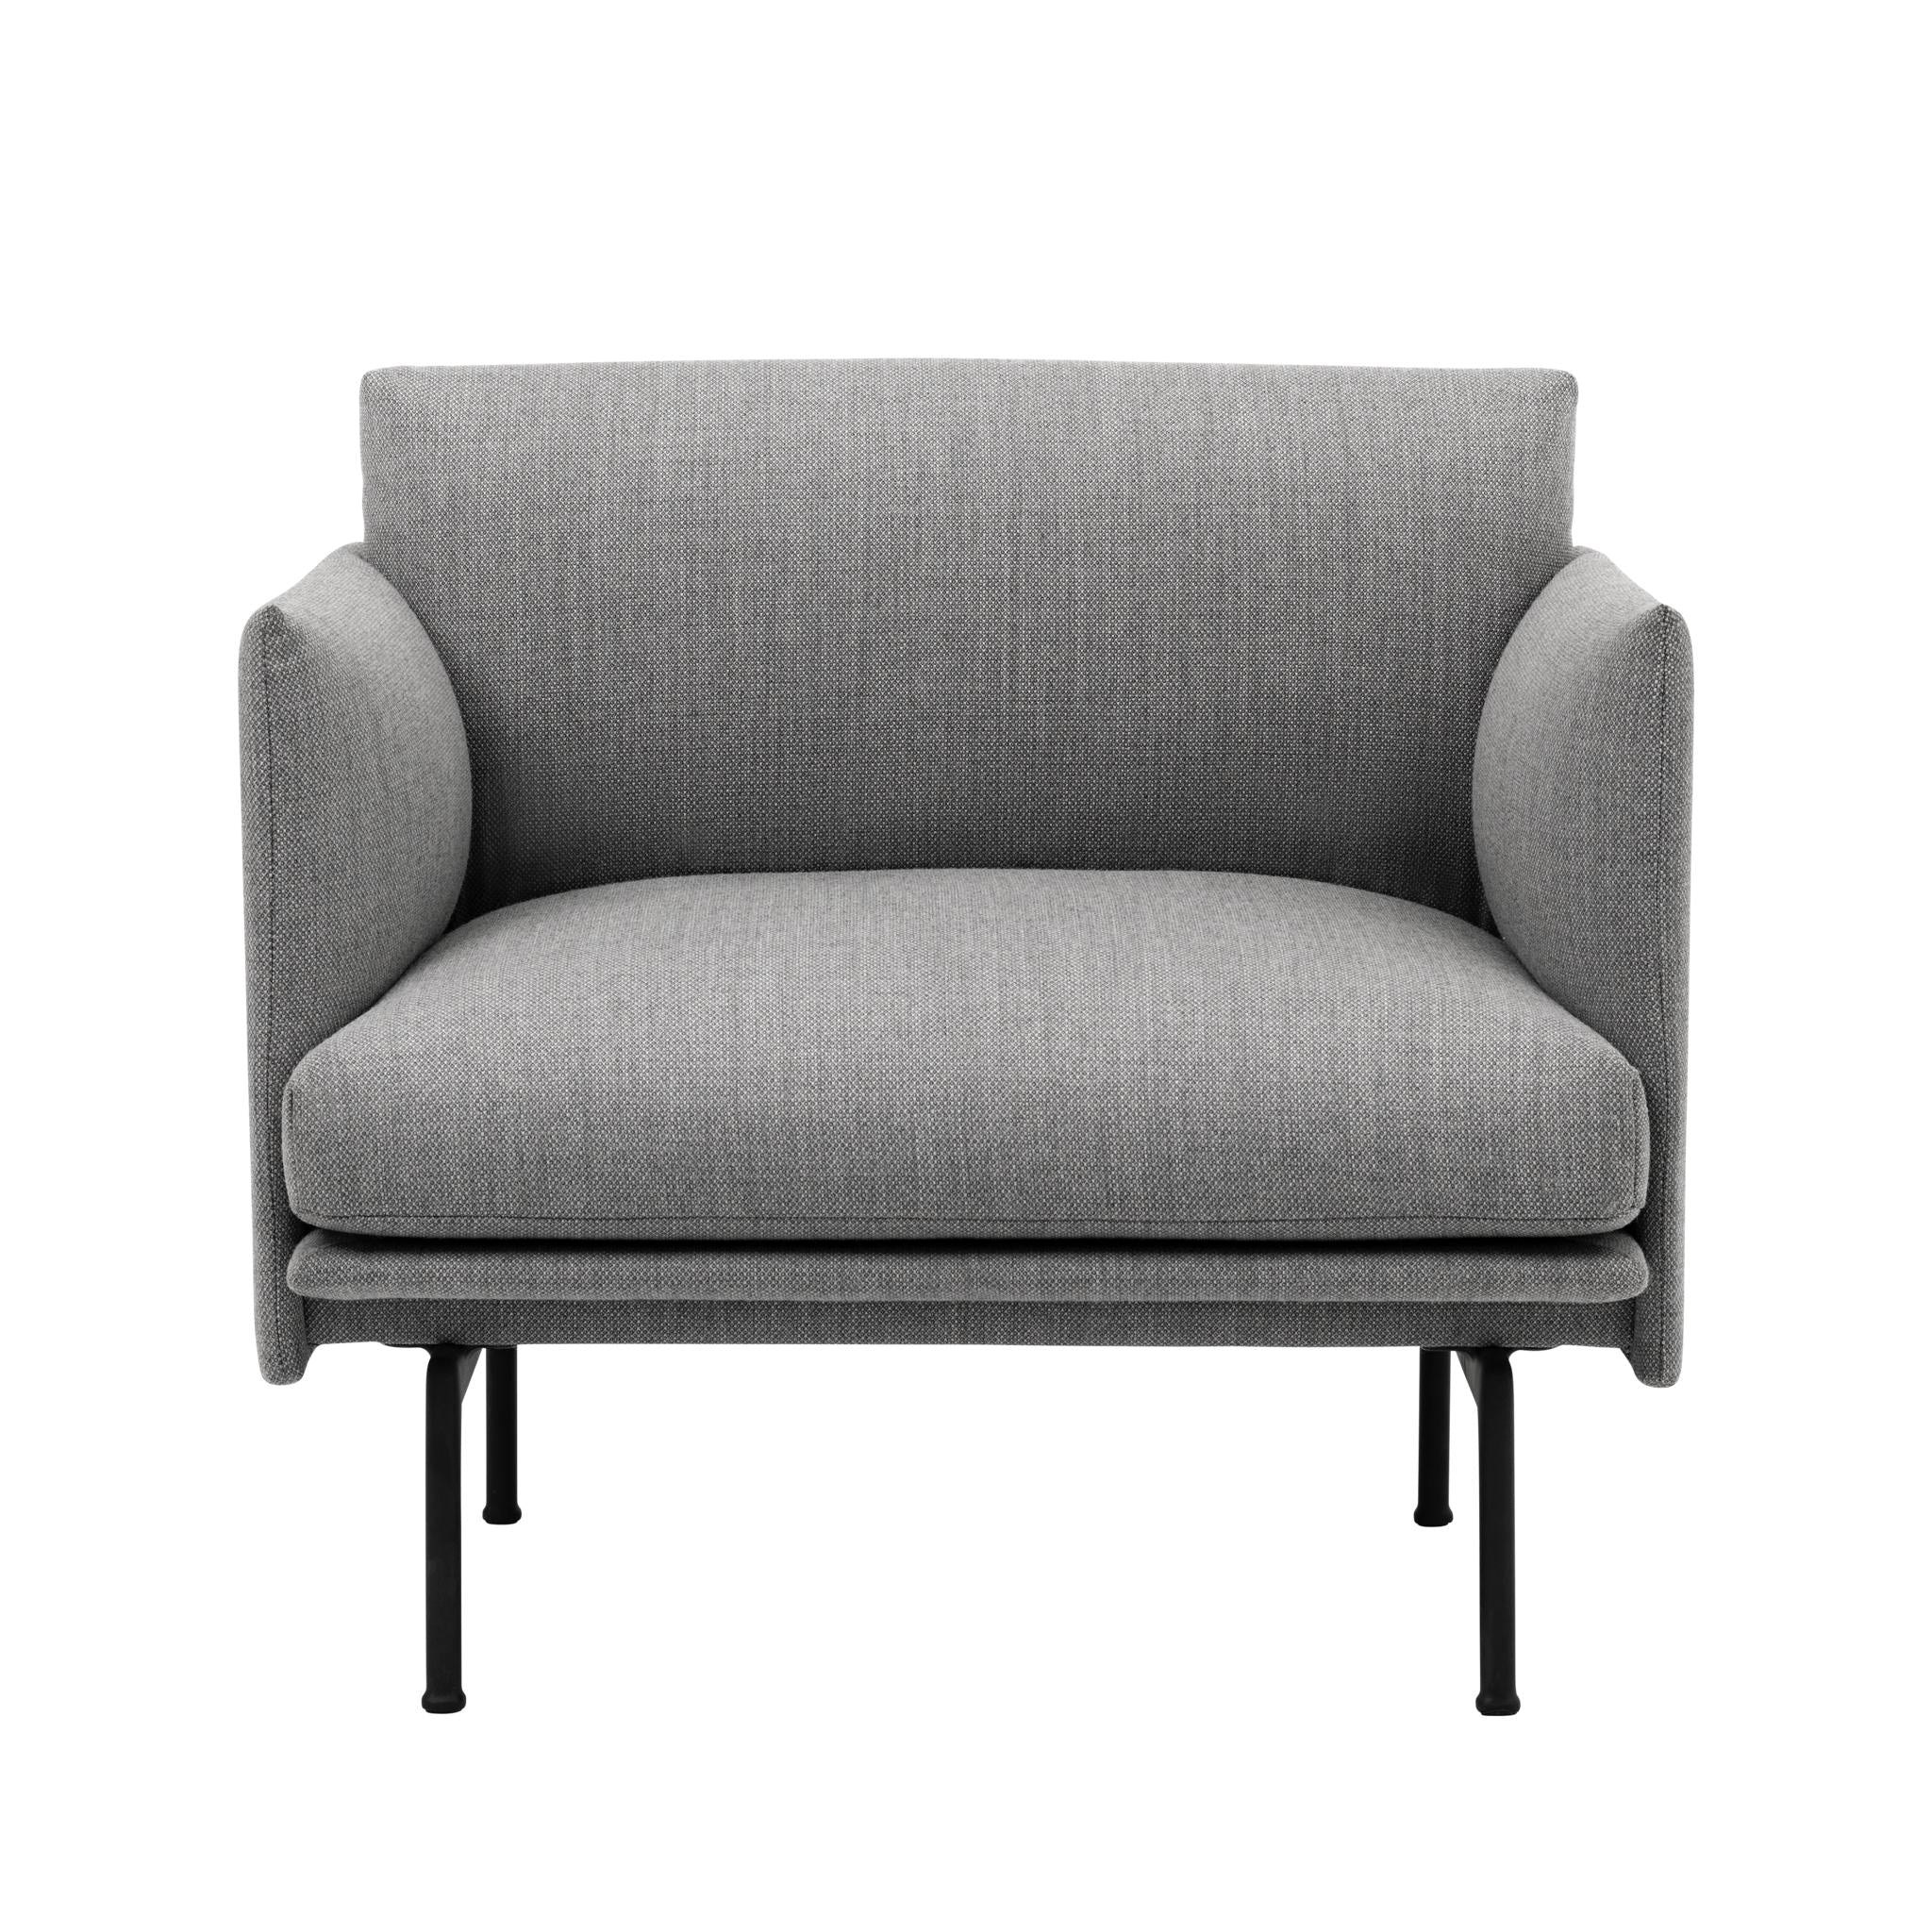 Outline Studio Chair by Muuto - haus®